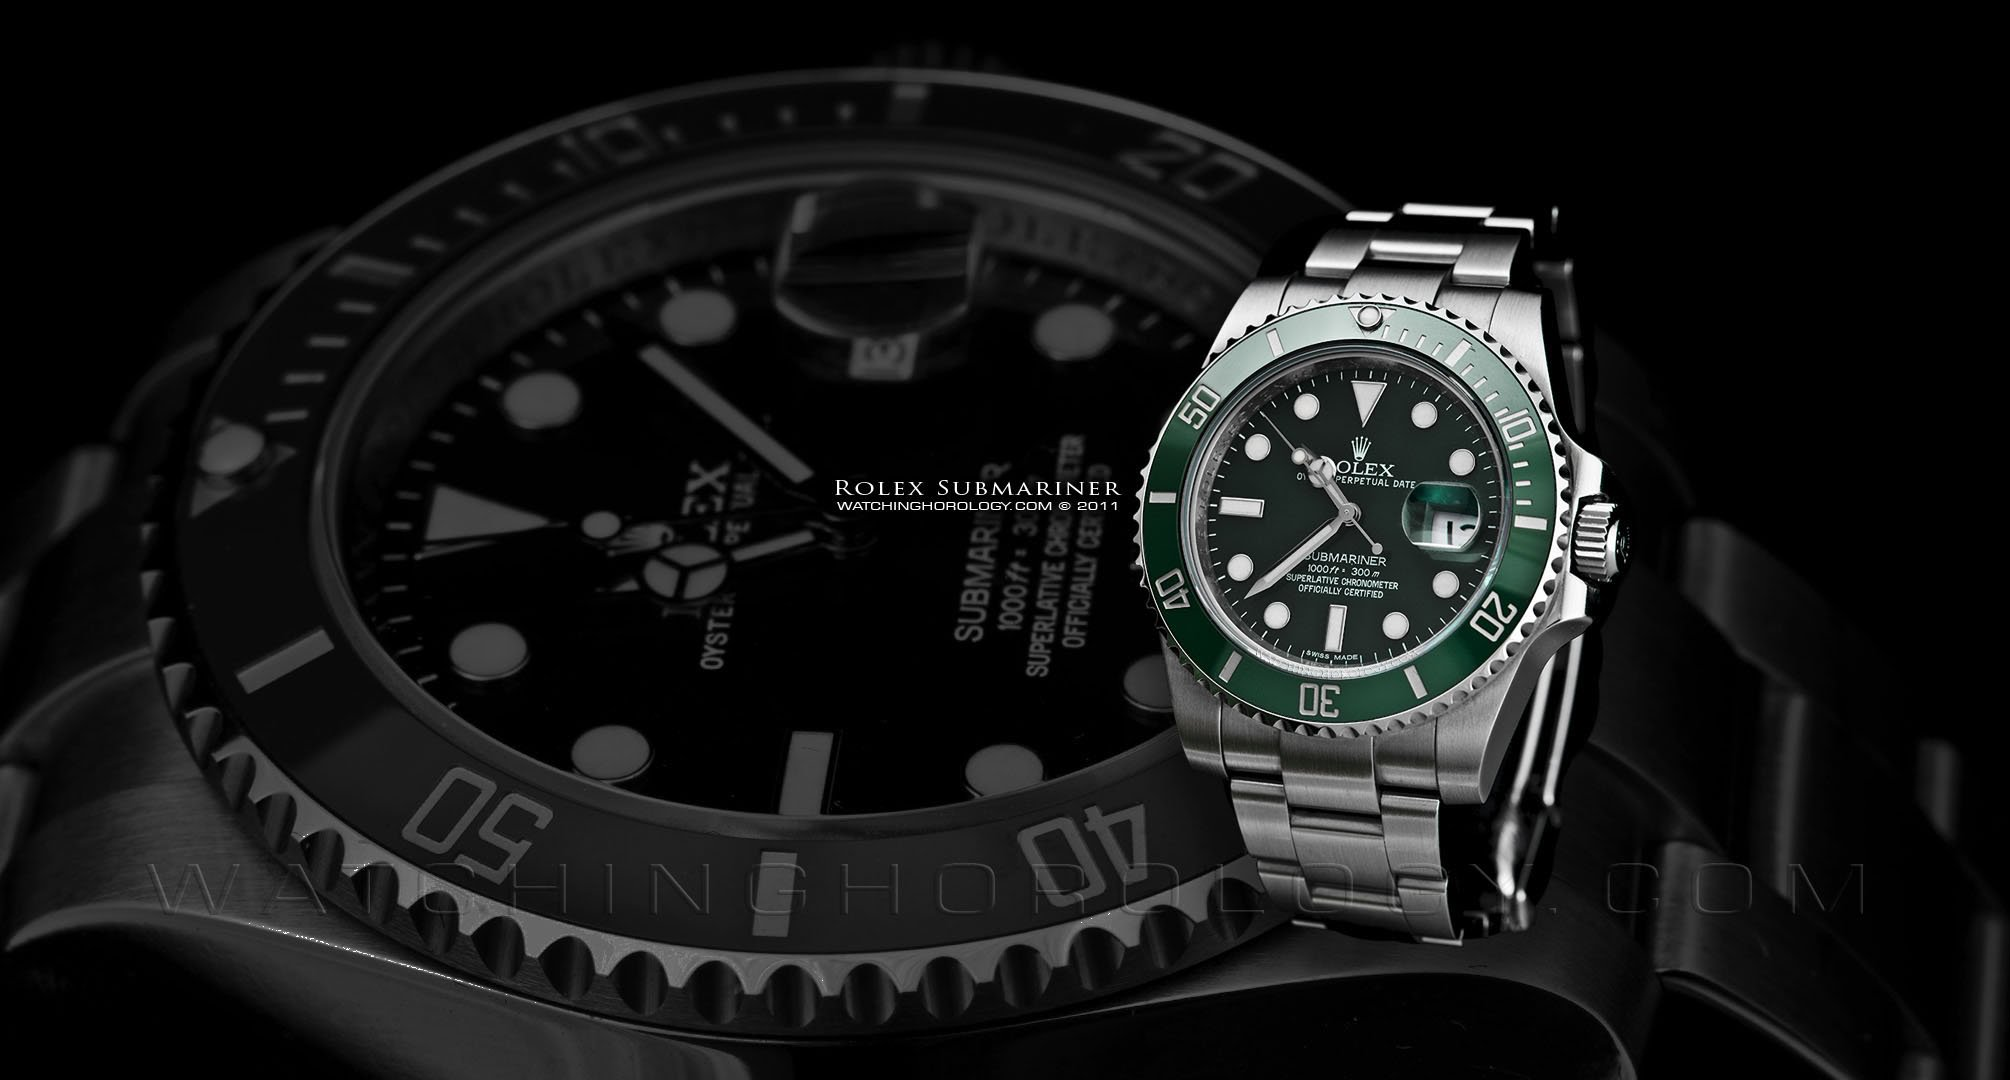 Rolex Wallpaper Clock on WallpaperSafari